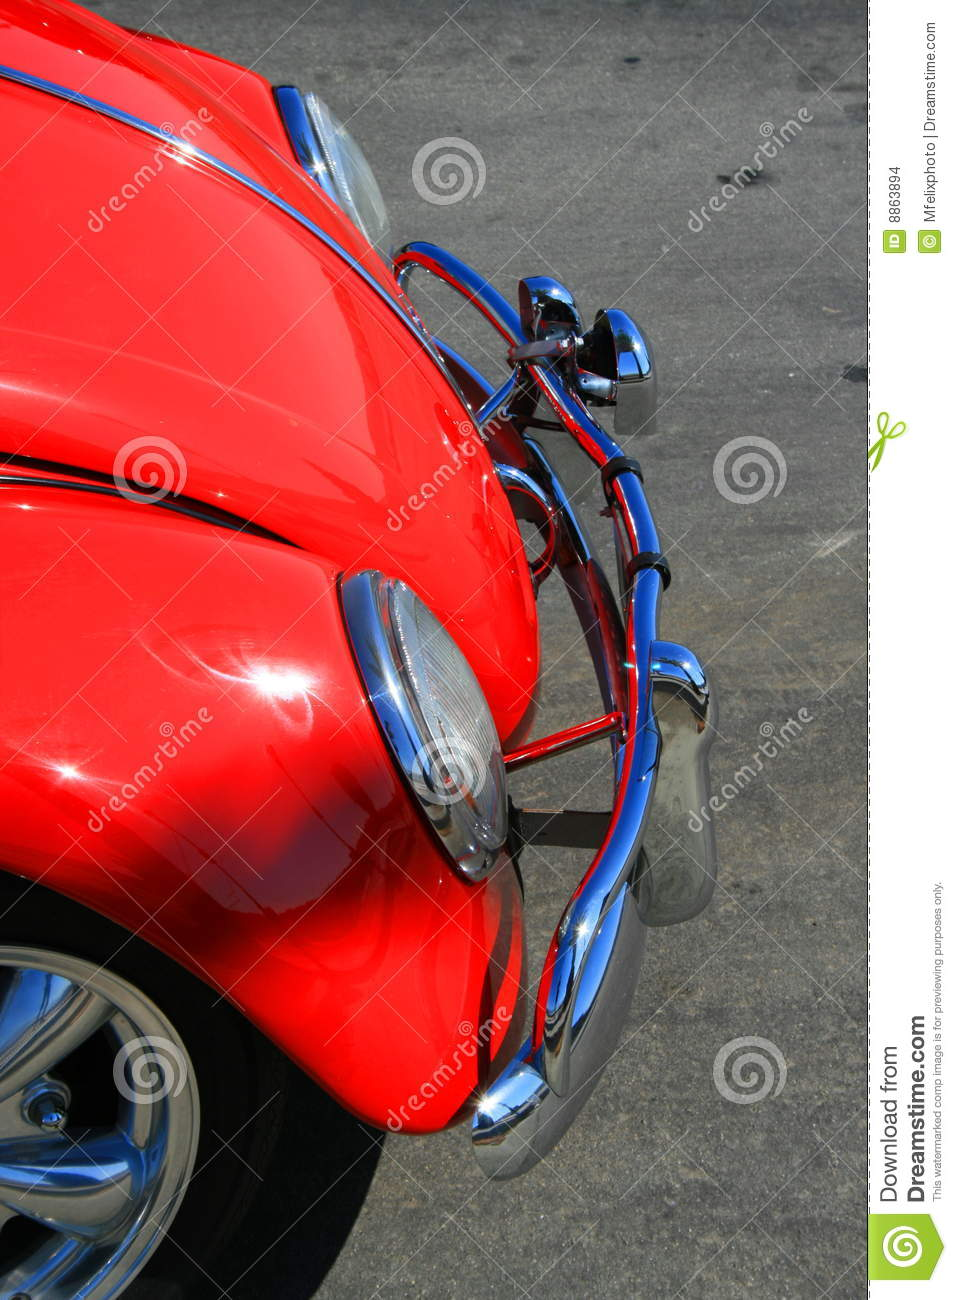 red car headlights close up royalty free stock photography 74160221. Black Bedroom Furniture Sets. Home Design Ideas